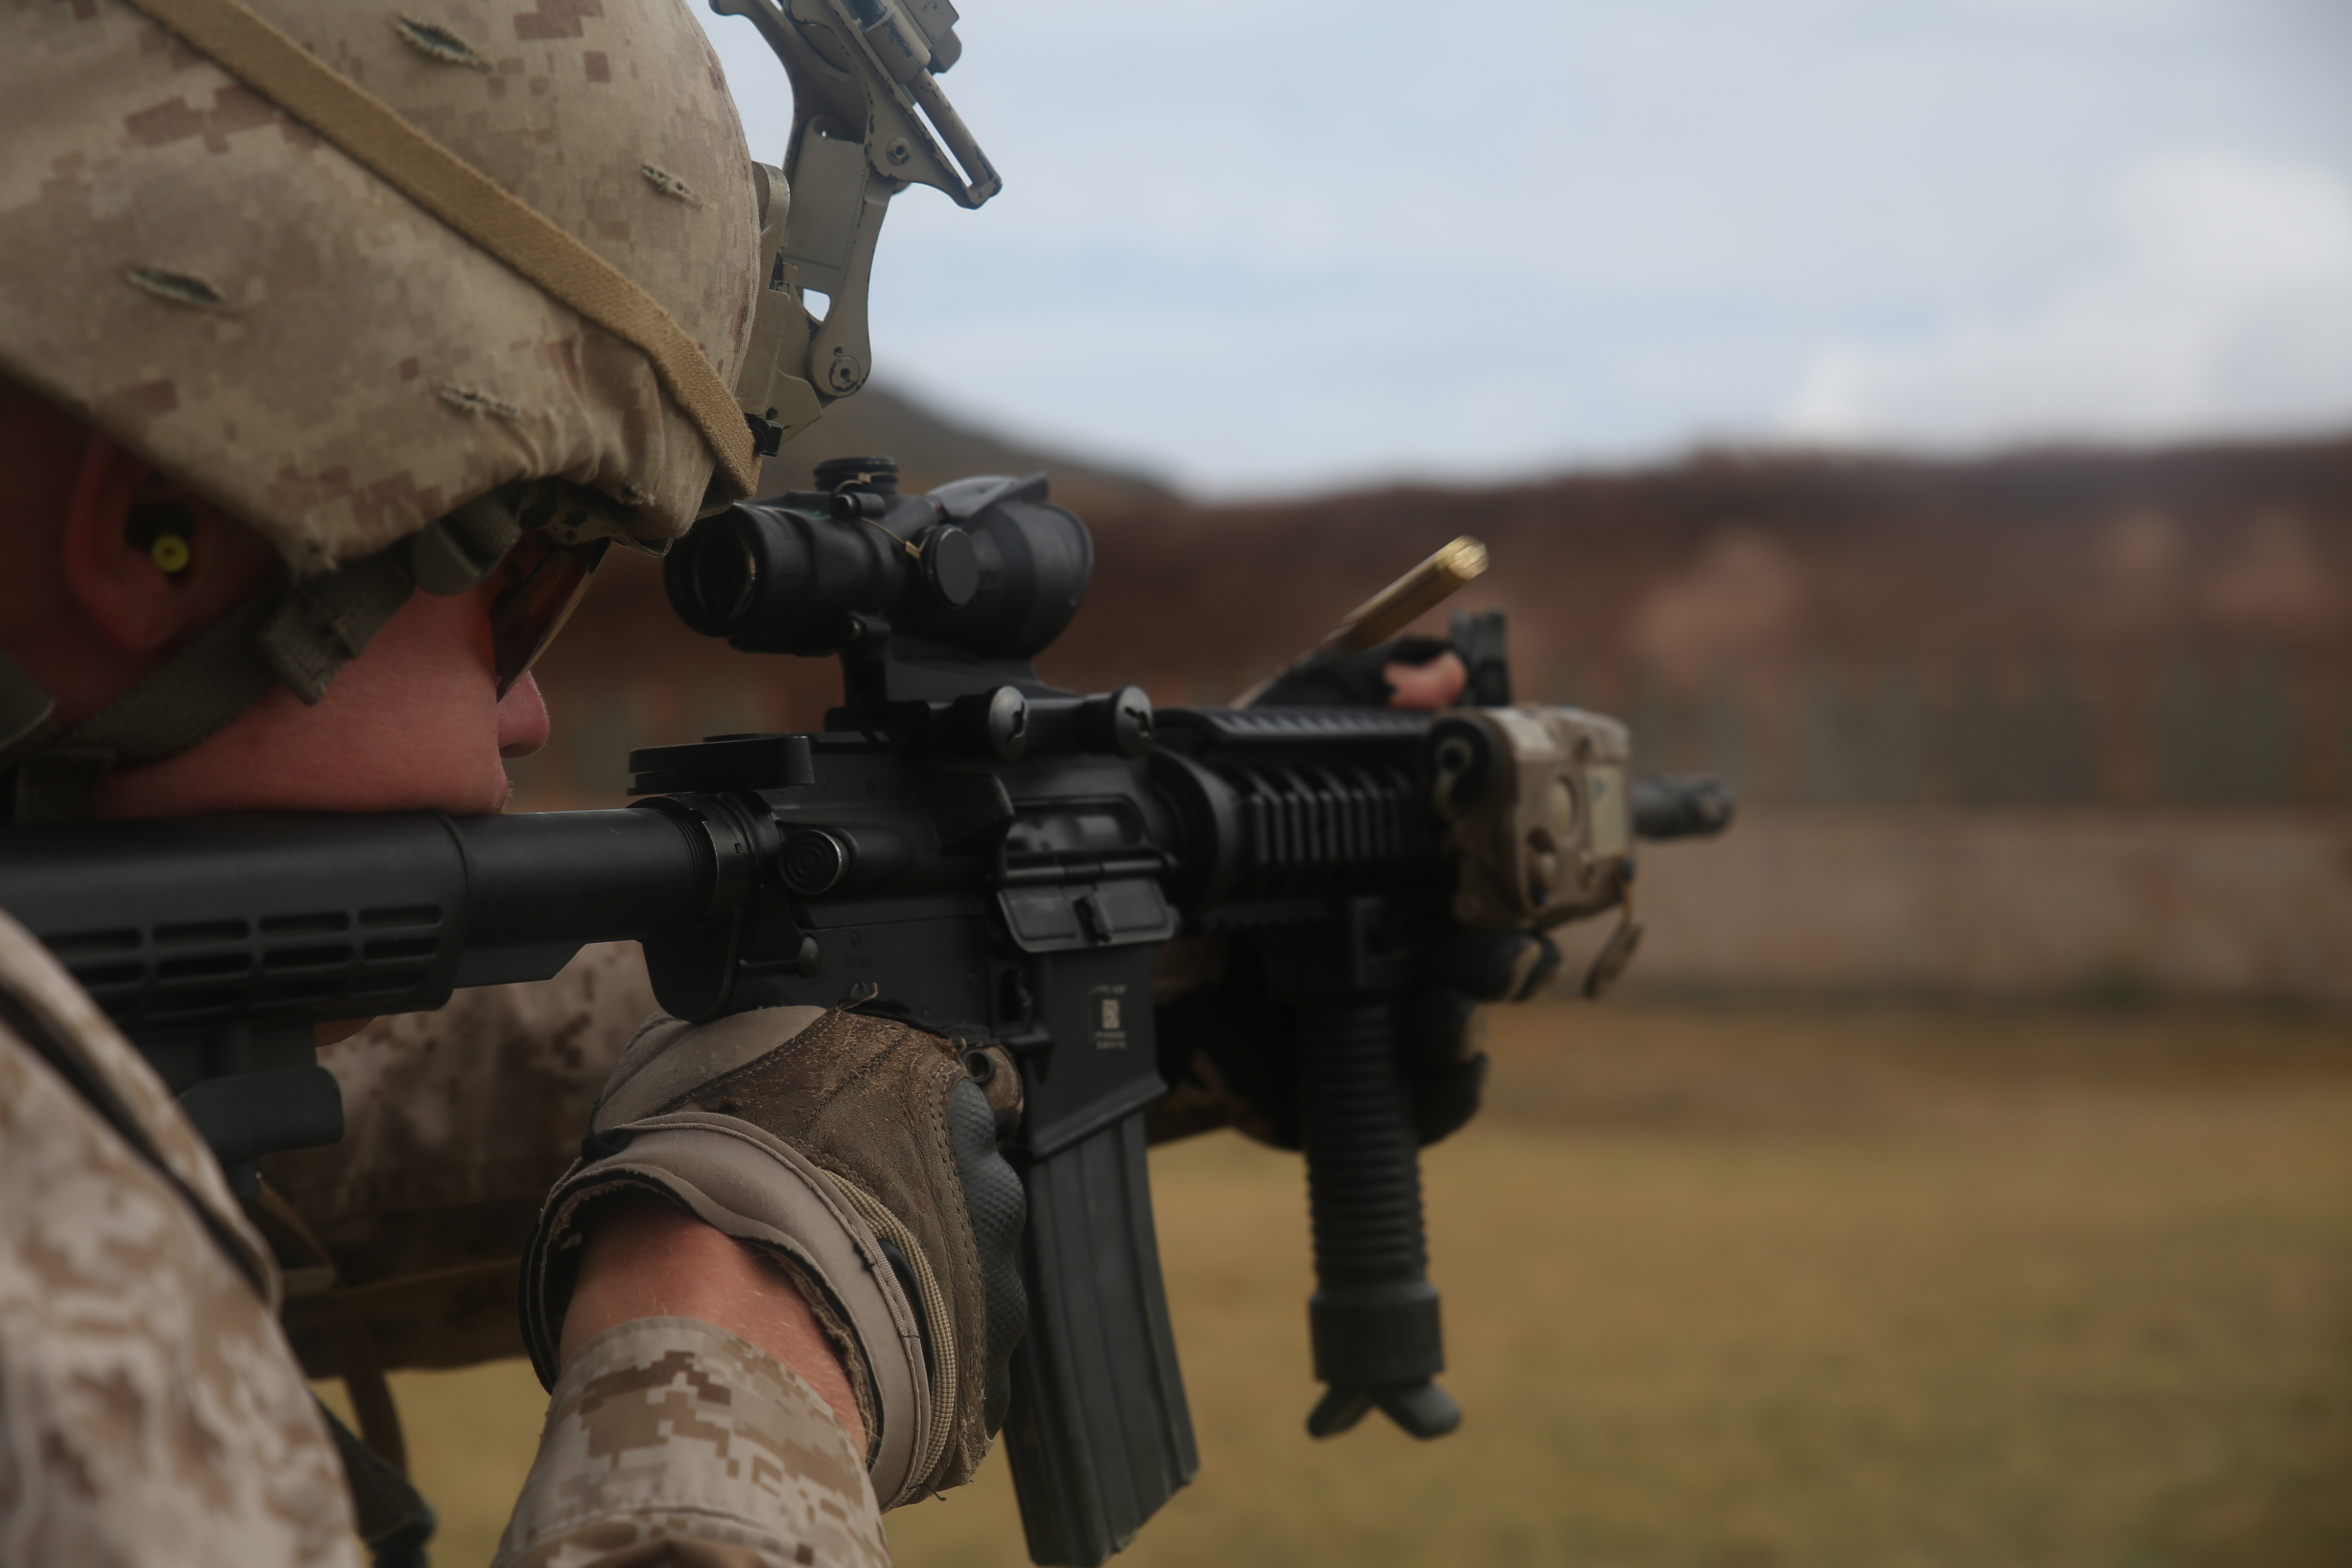 New in 2018: Corps adopts M855A1 round